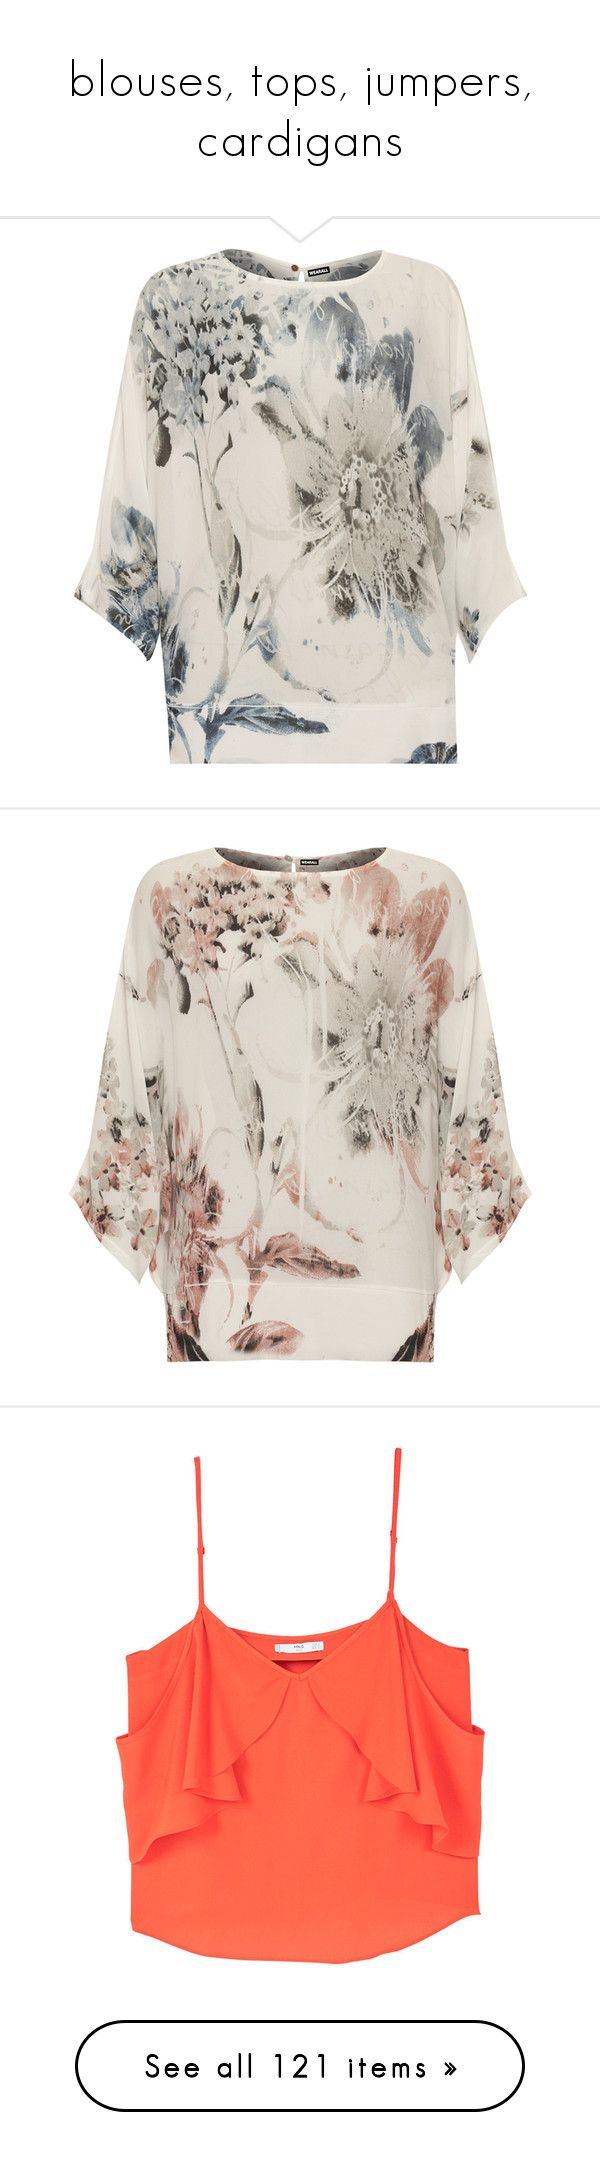 """blouses, tops, jumpers, cardigans"" by julidrops ❤ liked on Polyvore featuring tops, grey, see through tops, sheer long sleeve top, chiffon tops, batwing tops, long sleeve batwing top, brown, sheer floral top and pink chiffon top"